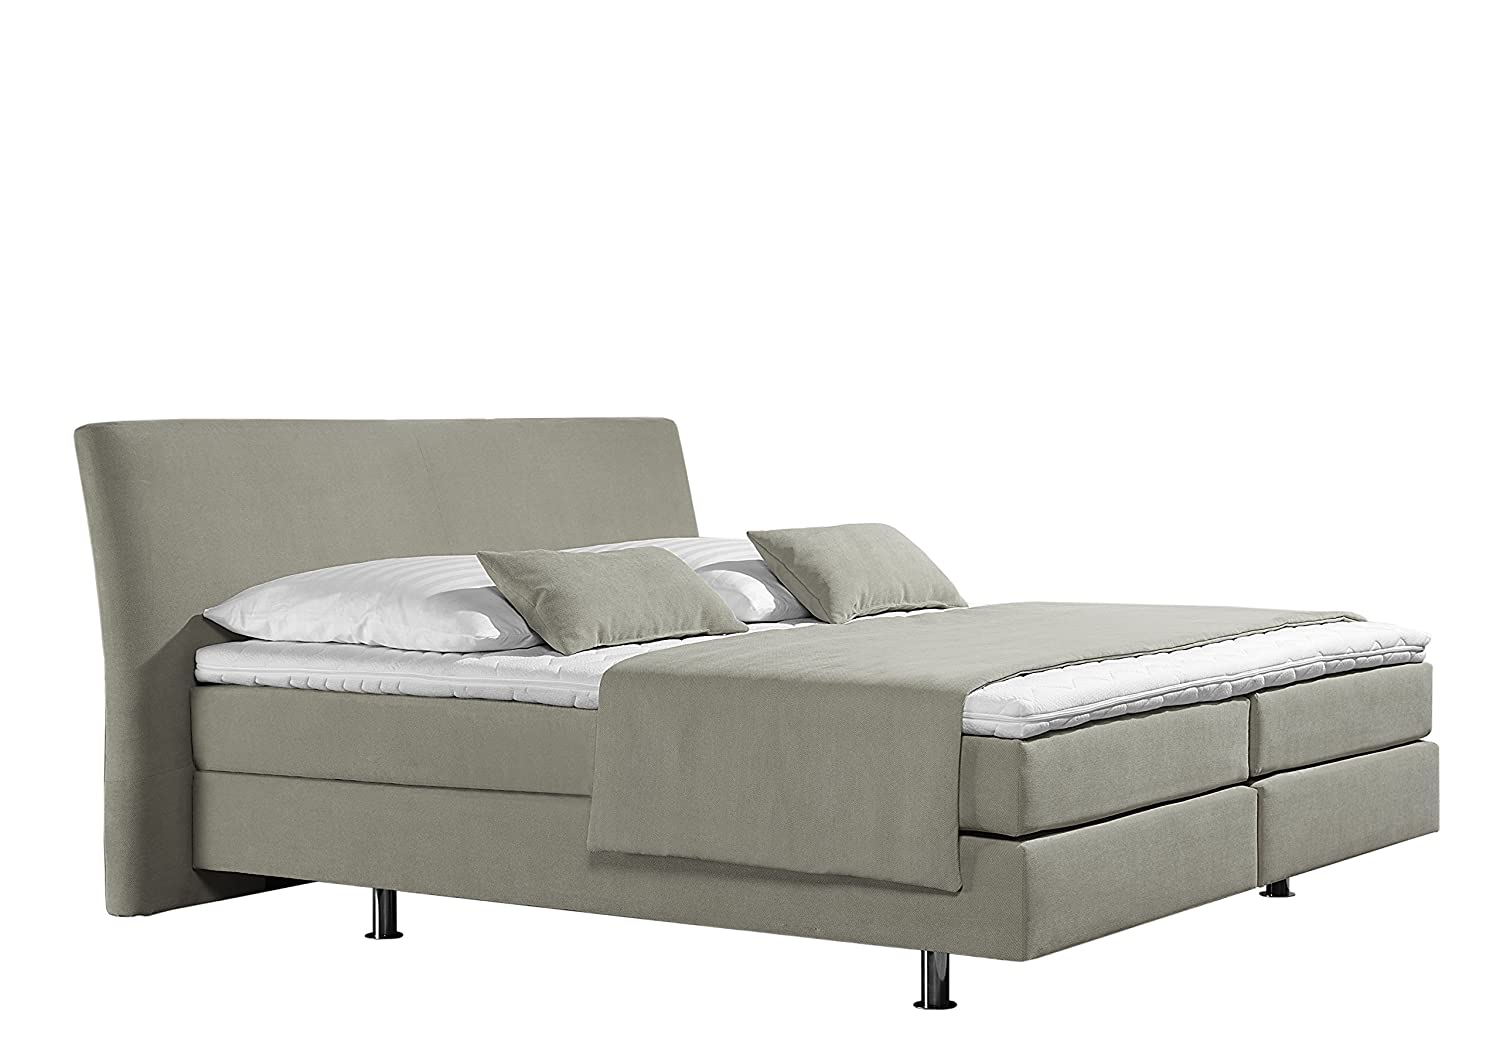 Maintal Betten 237379-4169 Box springbett Club 140 x 200 cm, Strukturstoff ecru